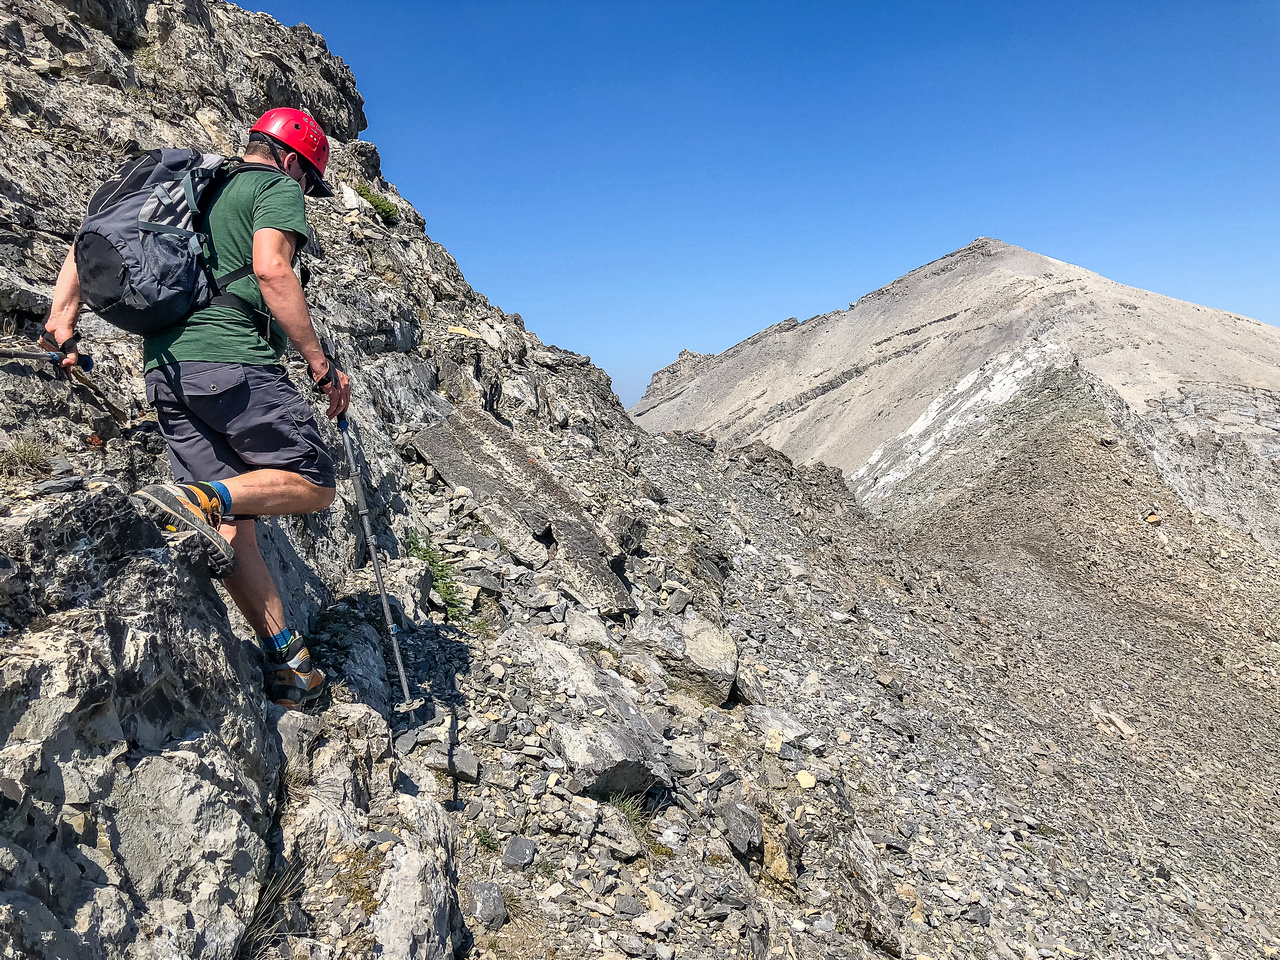 We always managed to find ledges leading down the east side of the ridge and around any serious sections.